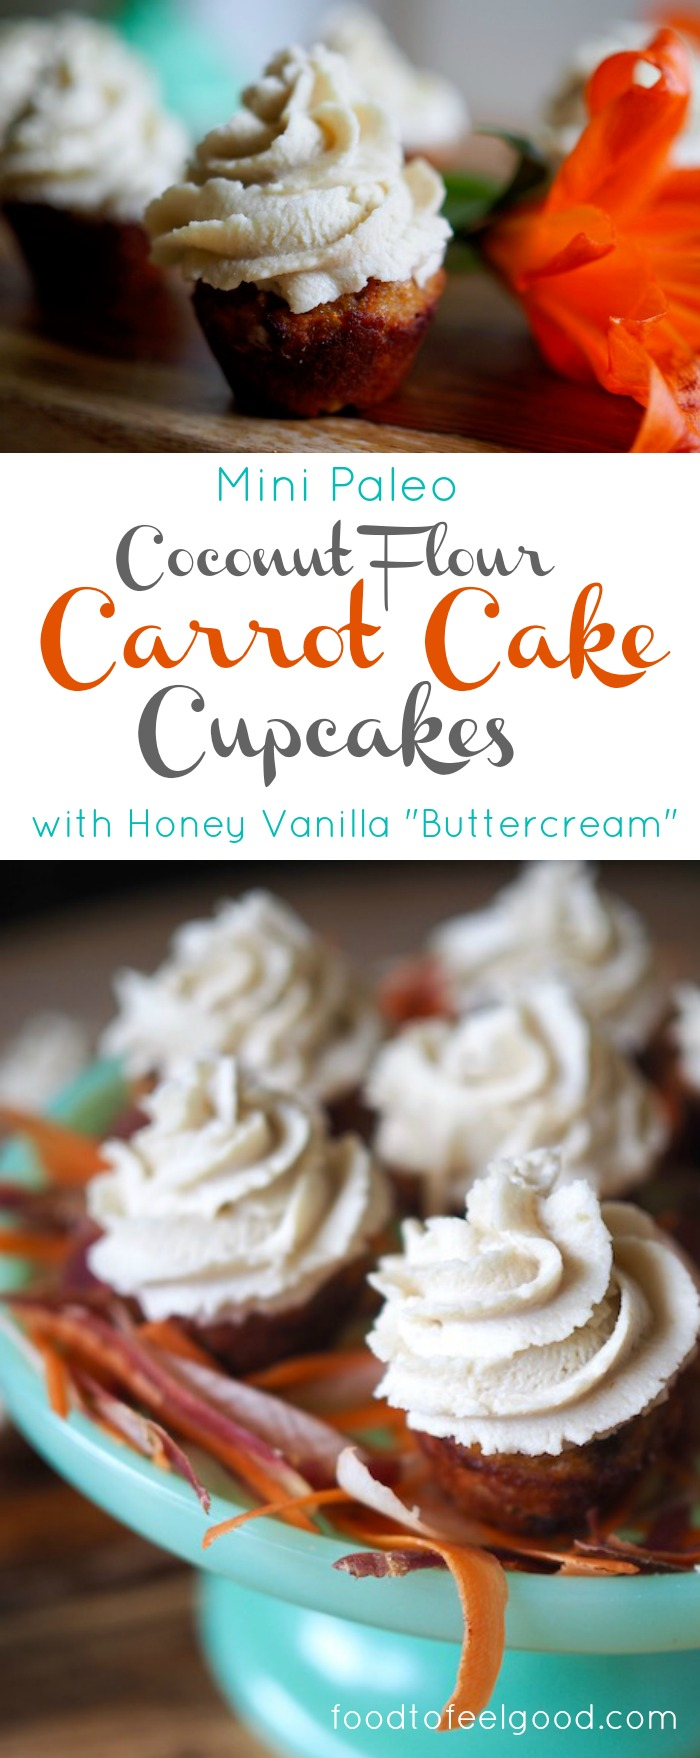 "Mini Coconut Flour Carrot Cake Cupcakes with Honey Vanilla ""Buttercream"" 